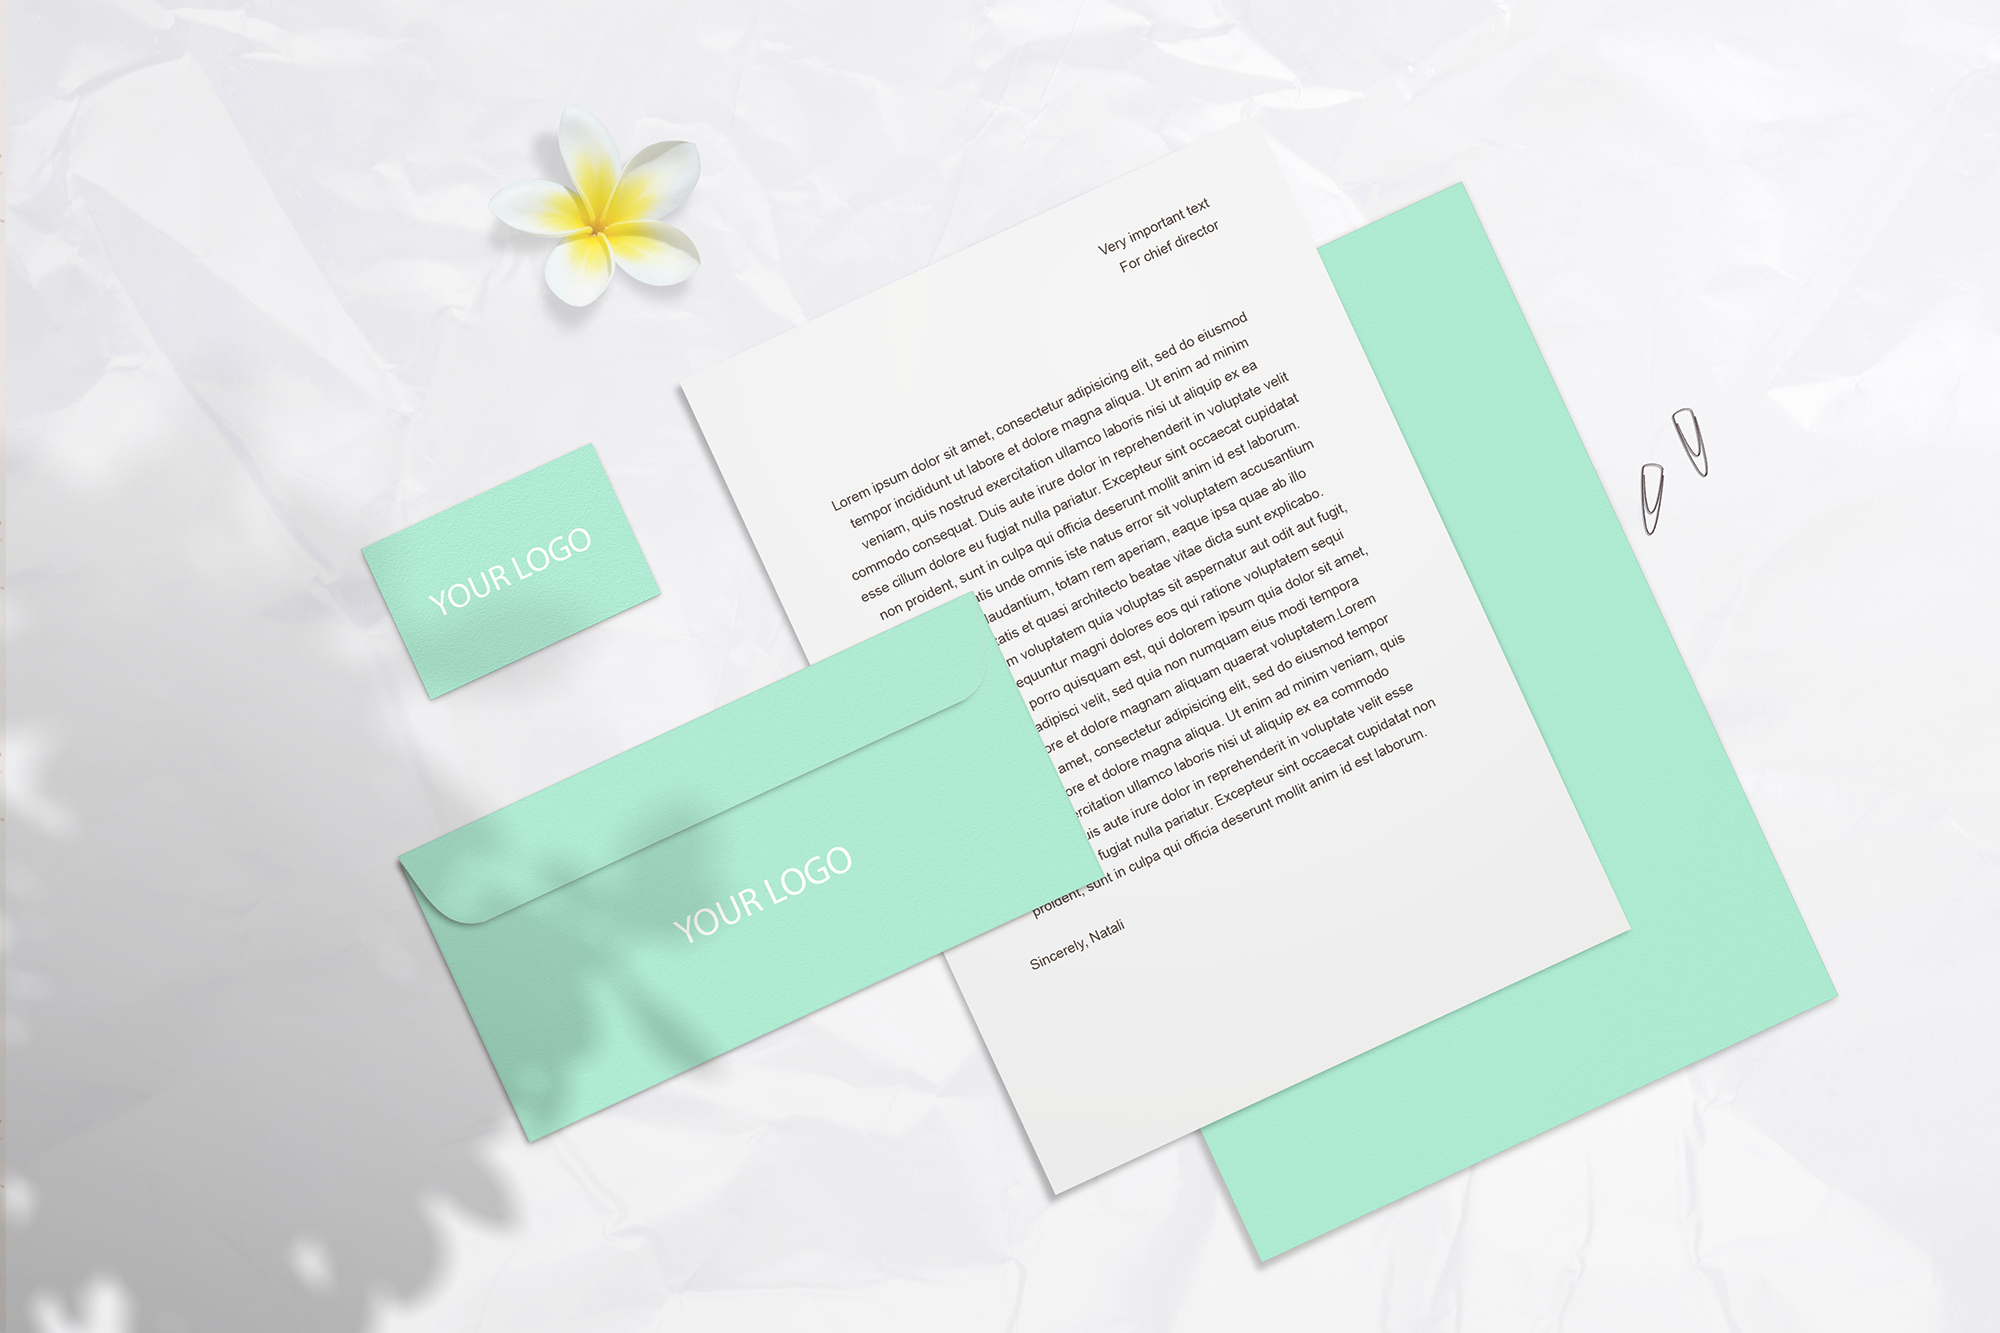 Summer Stationery Branding Mockup with Shadows example image 2